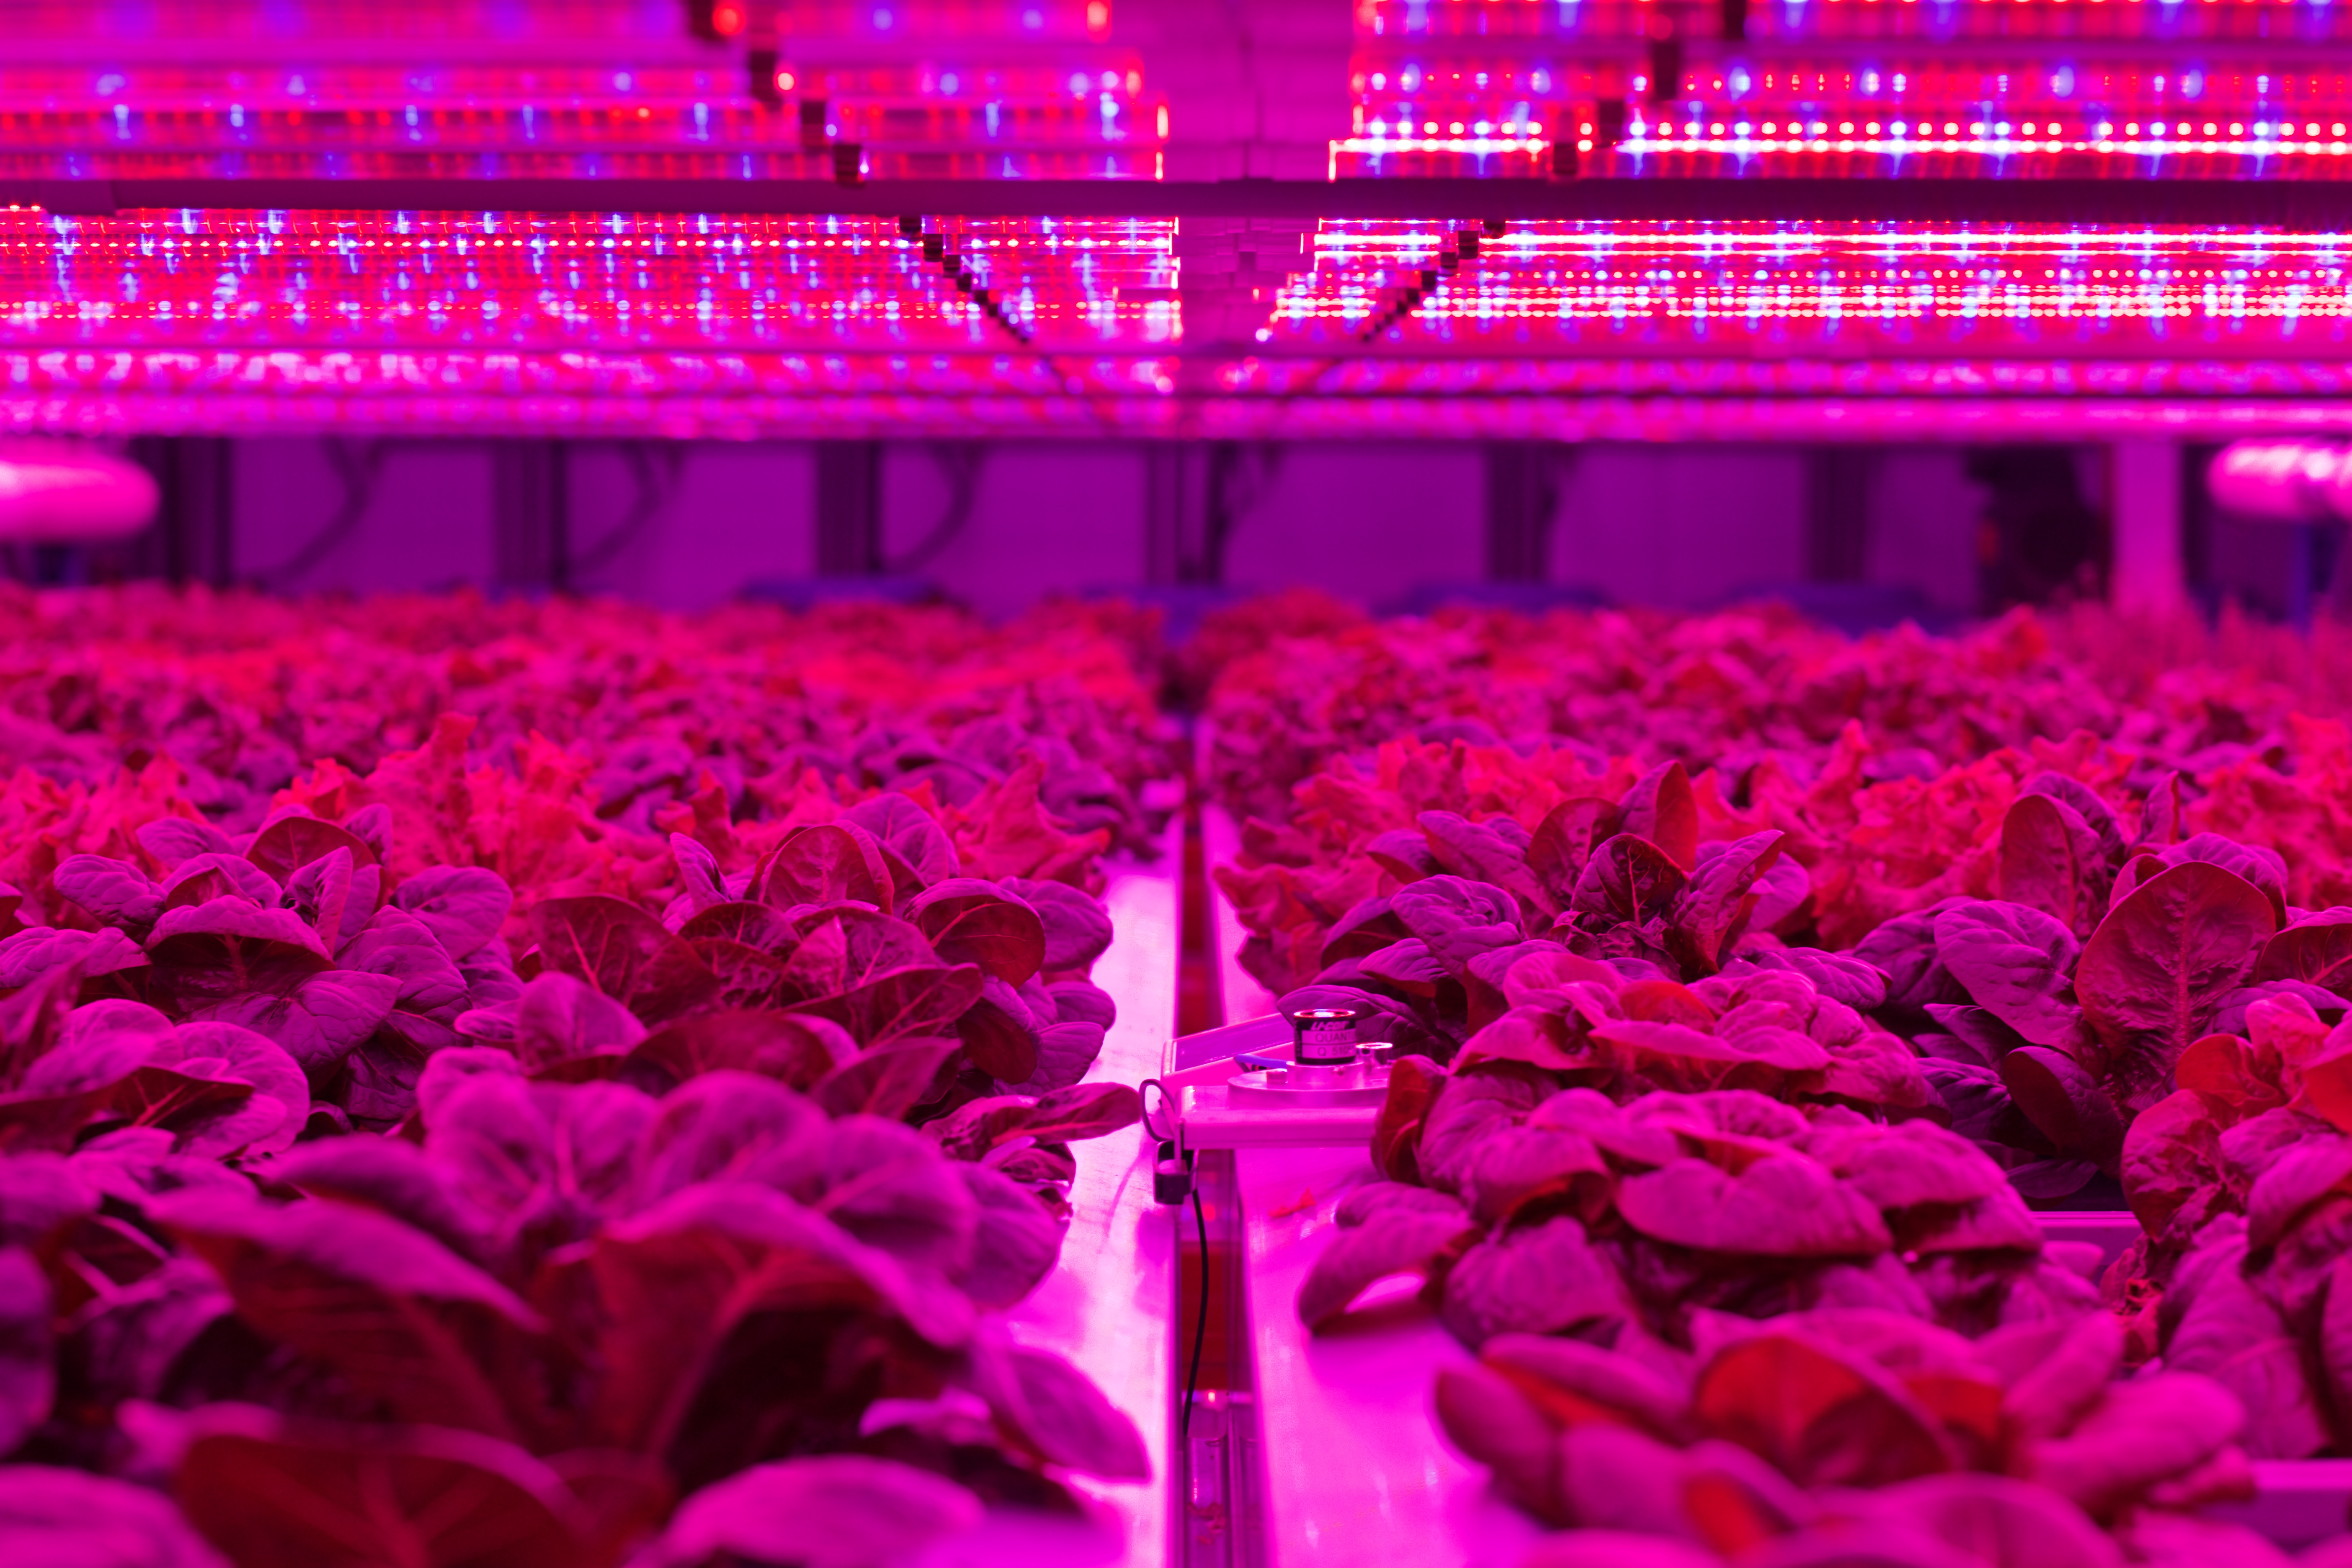 Image of crops growing indoors under LED lighting